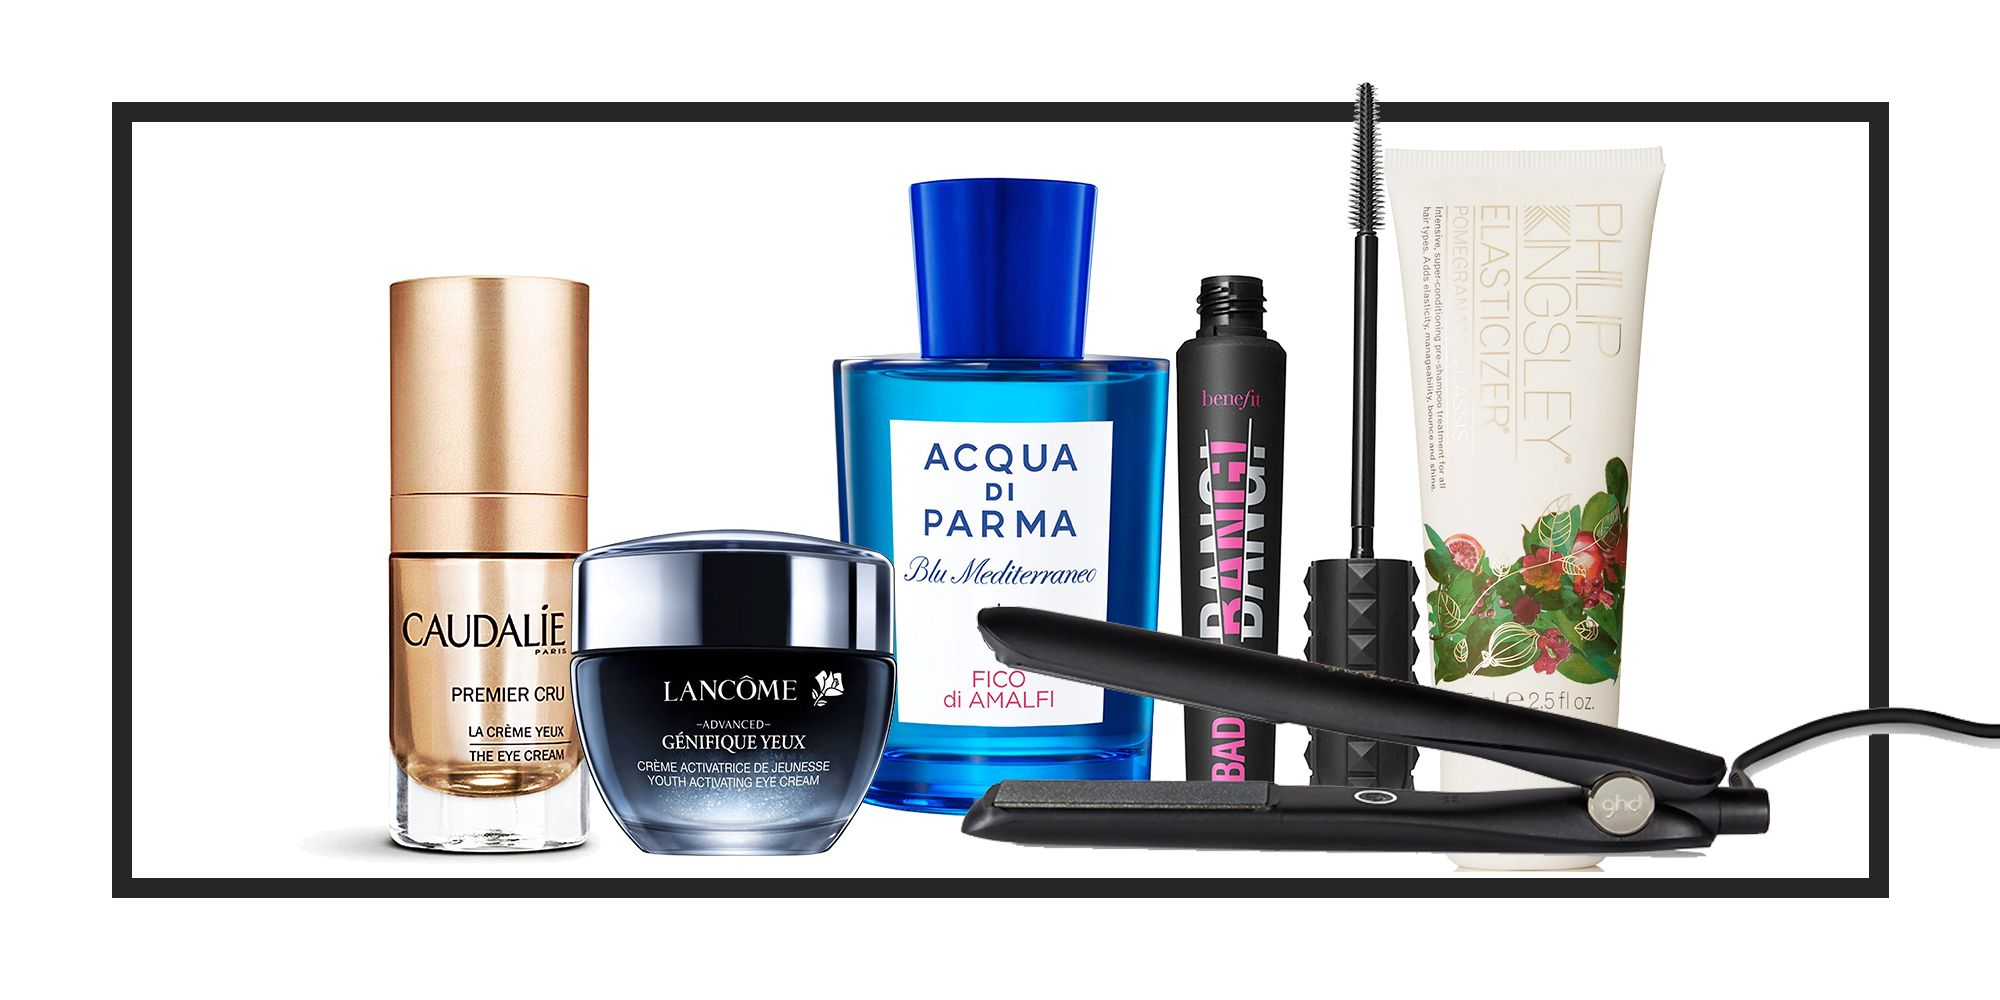 10 Amazon Black Friday Beauty Deals That Will Make You Look Younger forecast